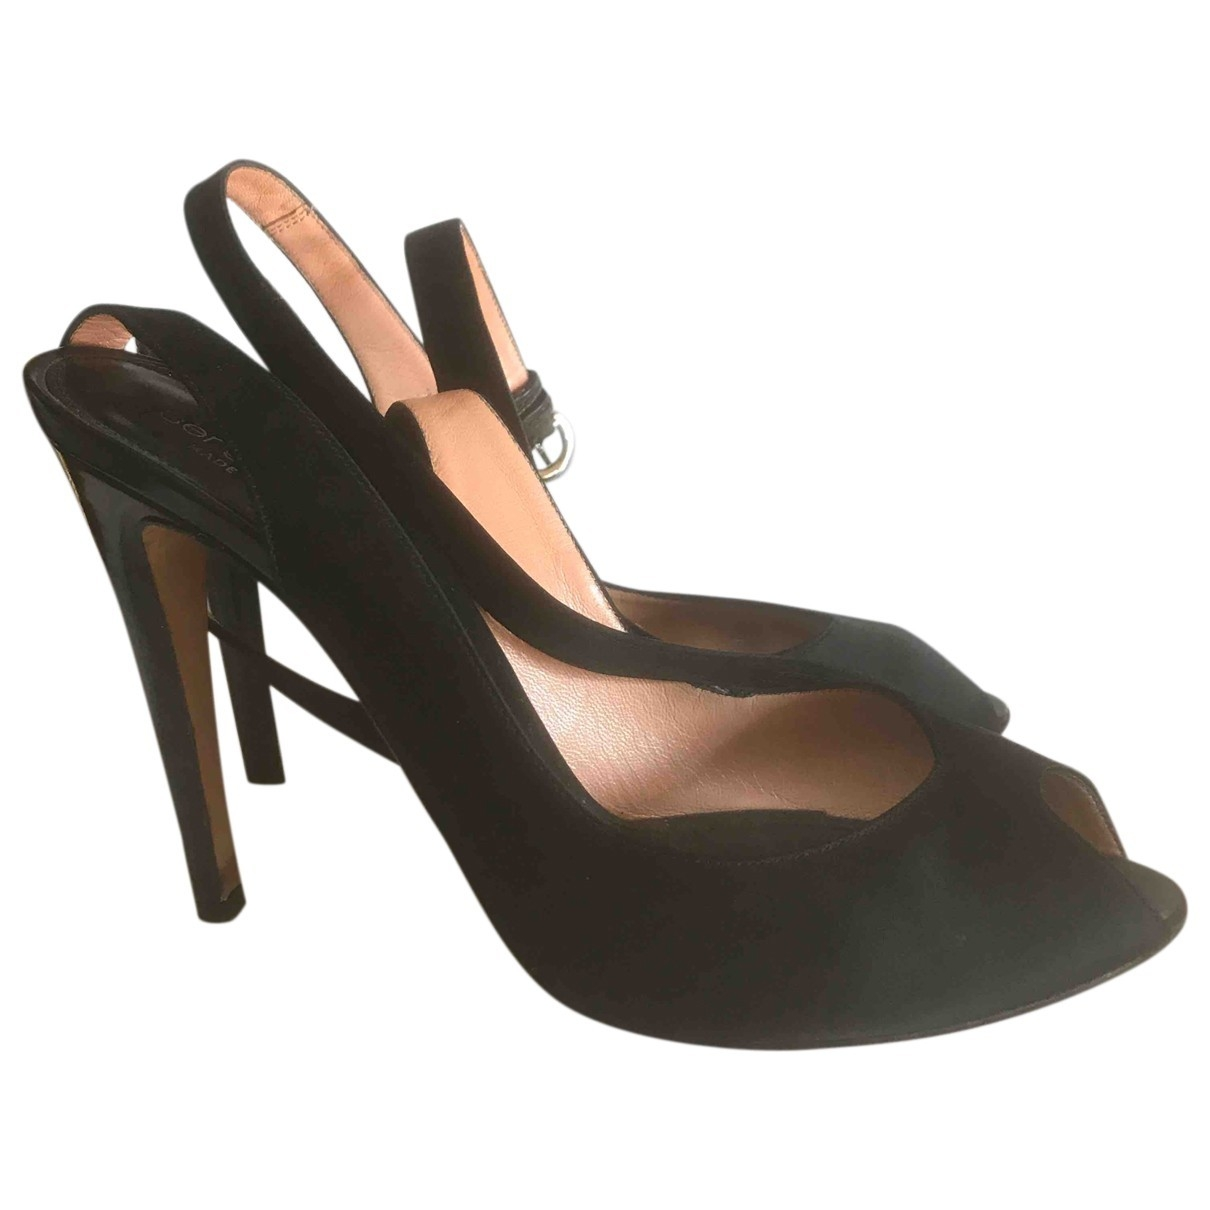 Sergio Rossi \N Black Leather Heels for Women 39.5 EU